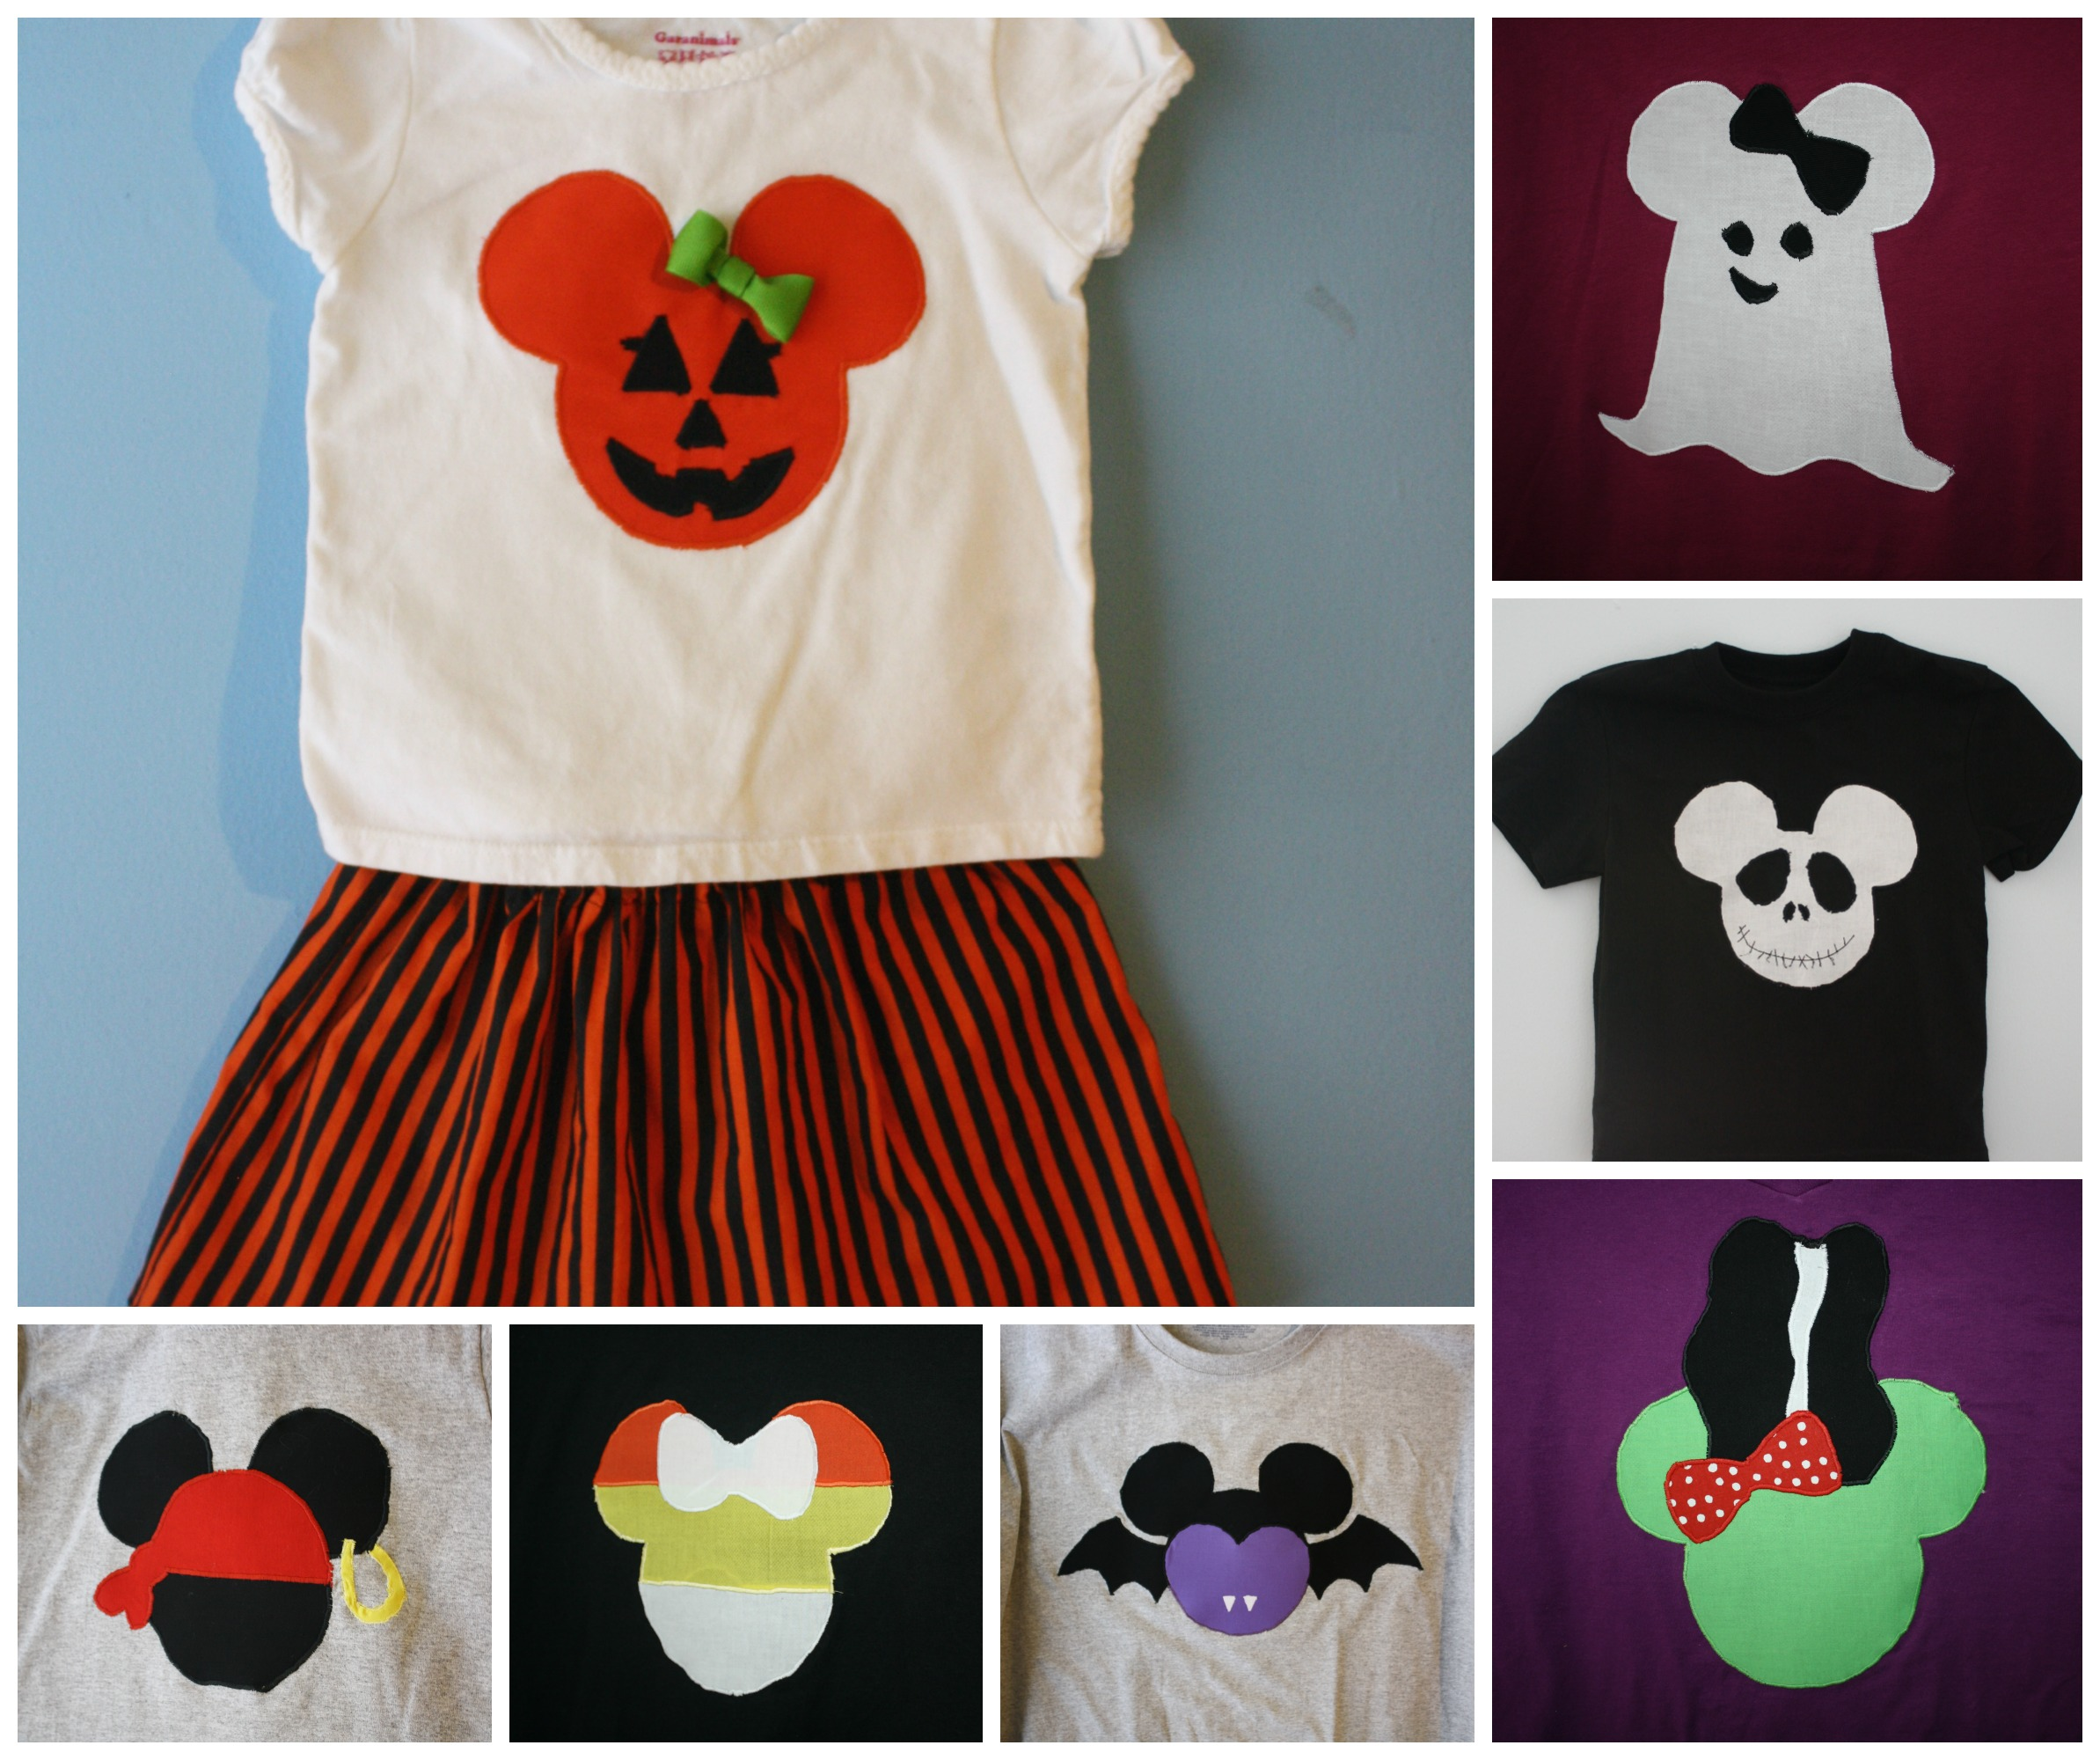 Disney Halloween Shirts For Kids.Not So Scary Halloween Shirts Fun Family Crafts